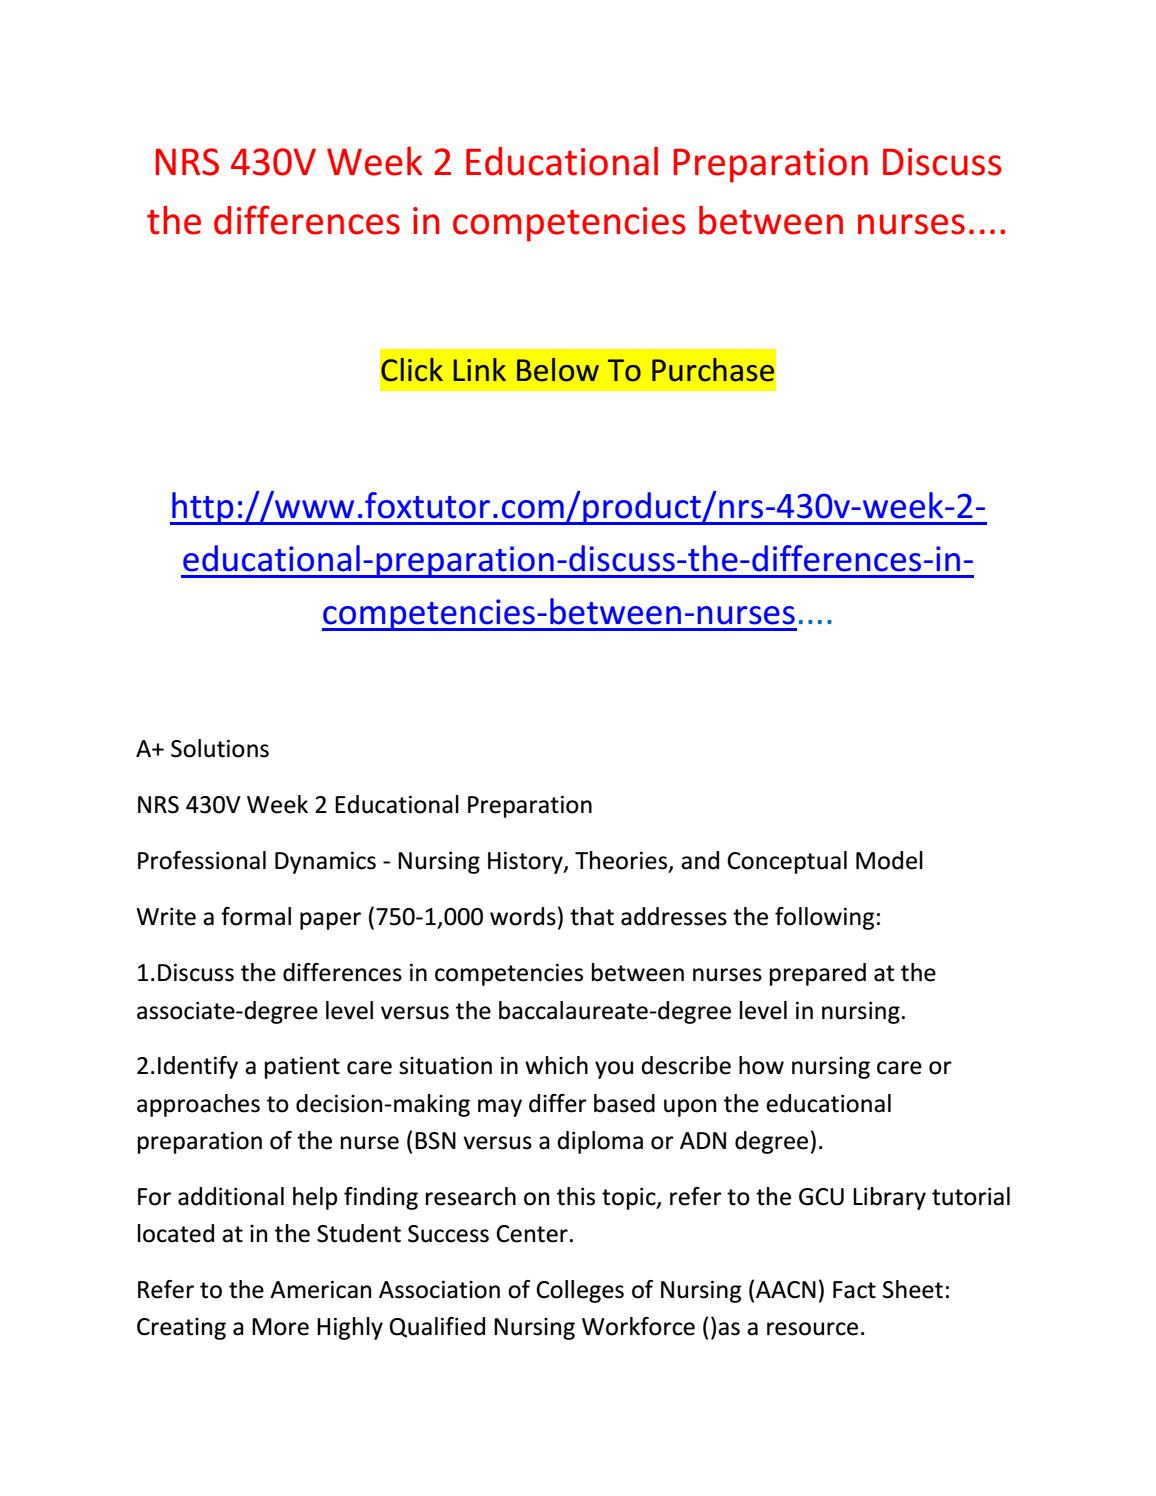 of patient care situation to describe differences in approach to nursing care based upon formal educ Formal education occurs in a  compulsory school education based on a national  's approach to early childhood education in 19th-century.